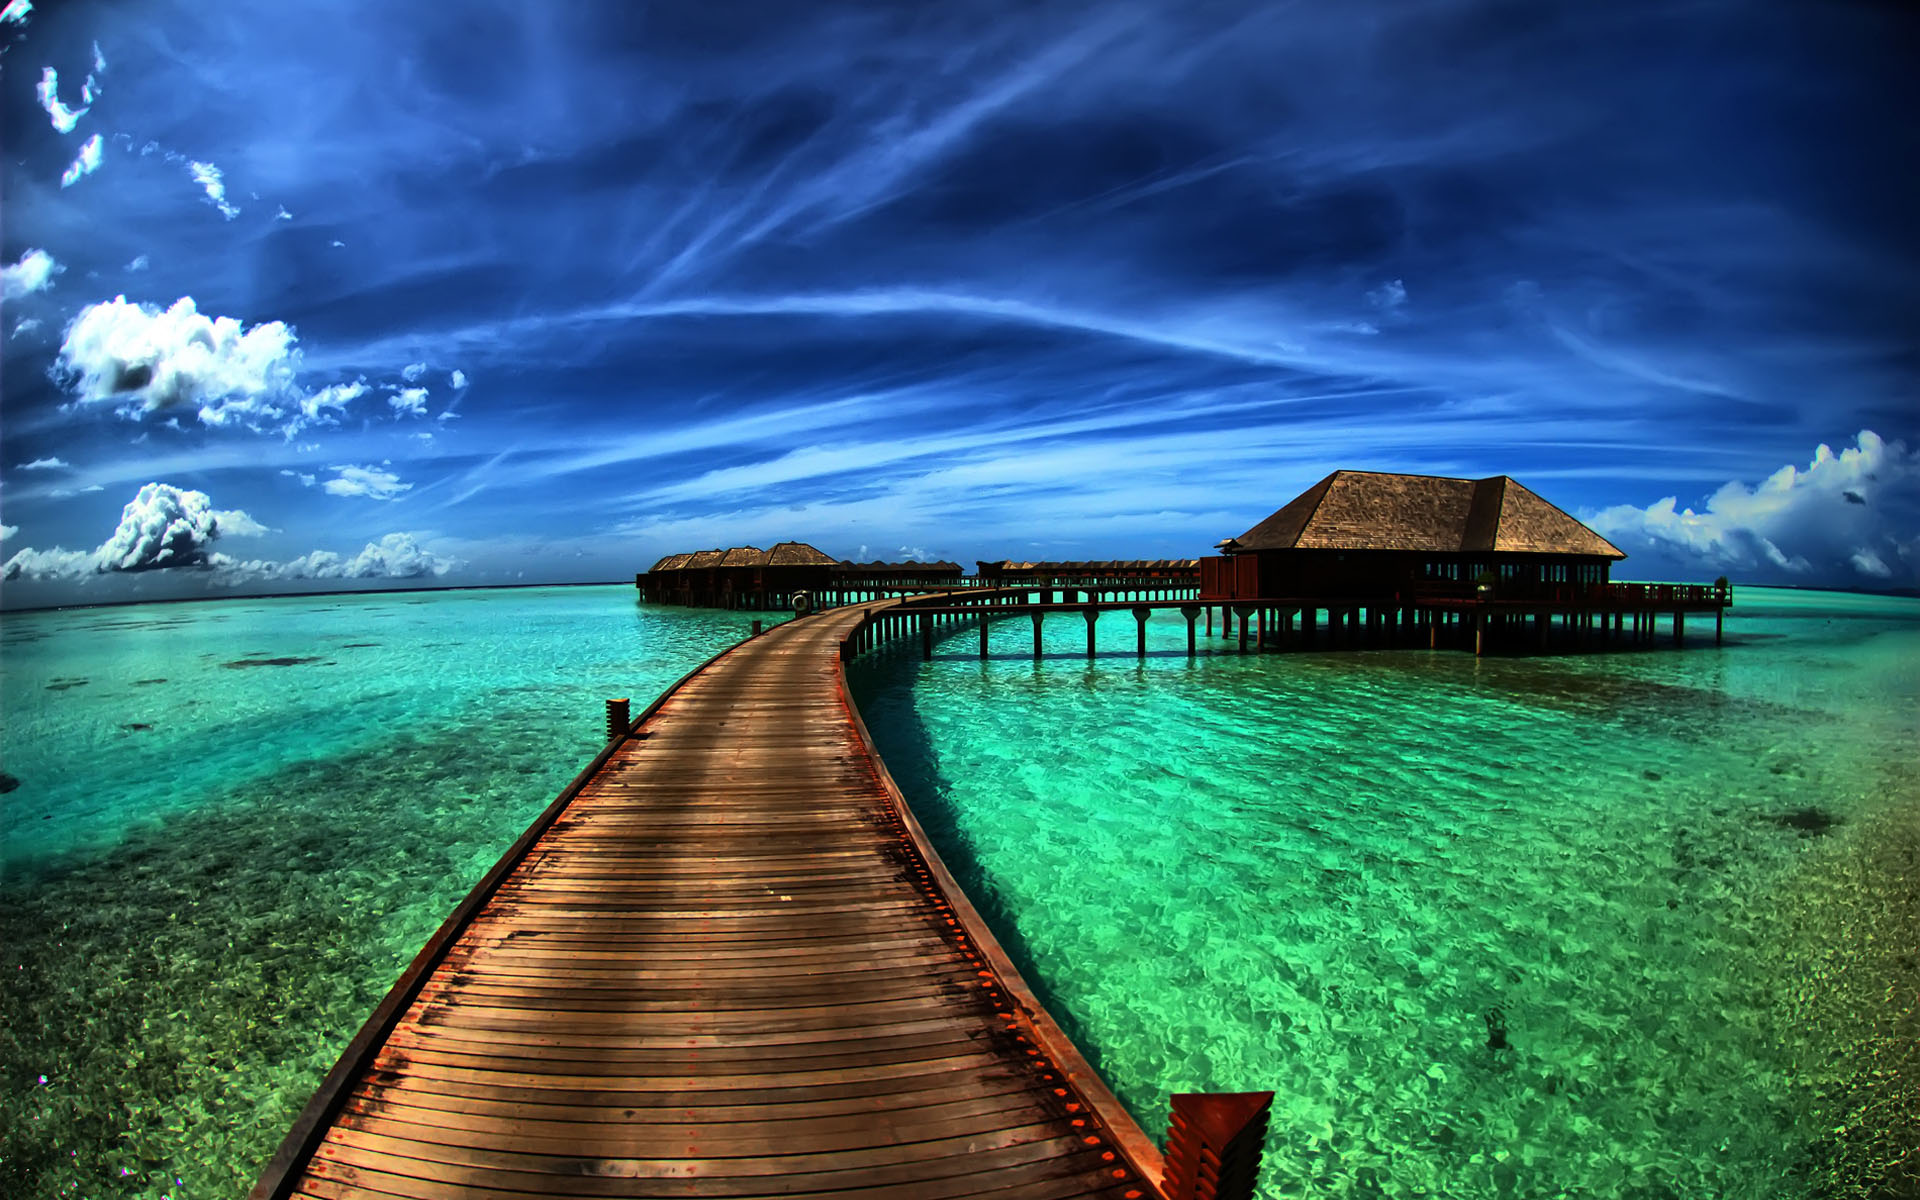 Nature-wallpaper-sea-paradise-1920x1200.jpg